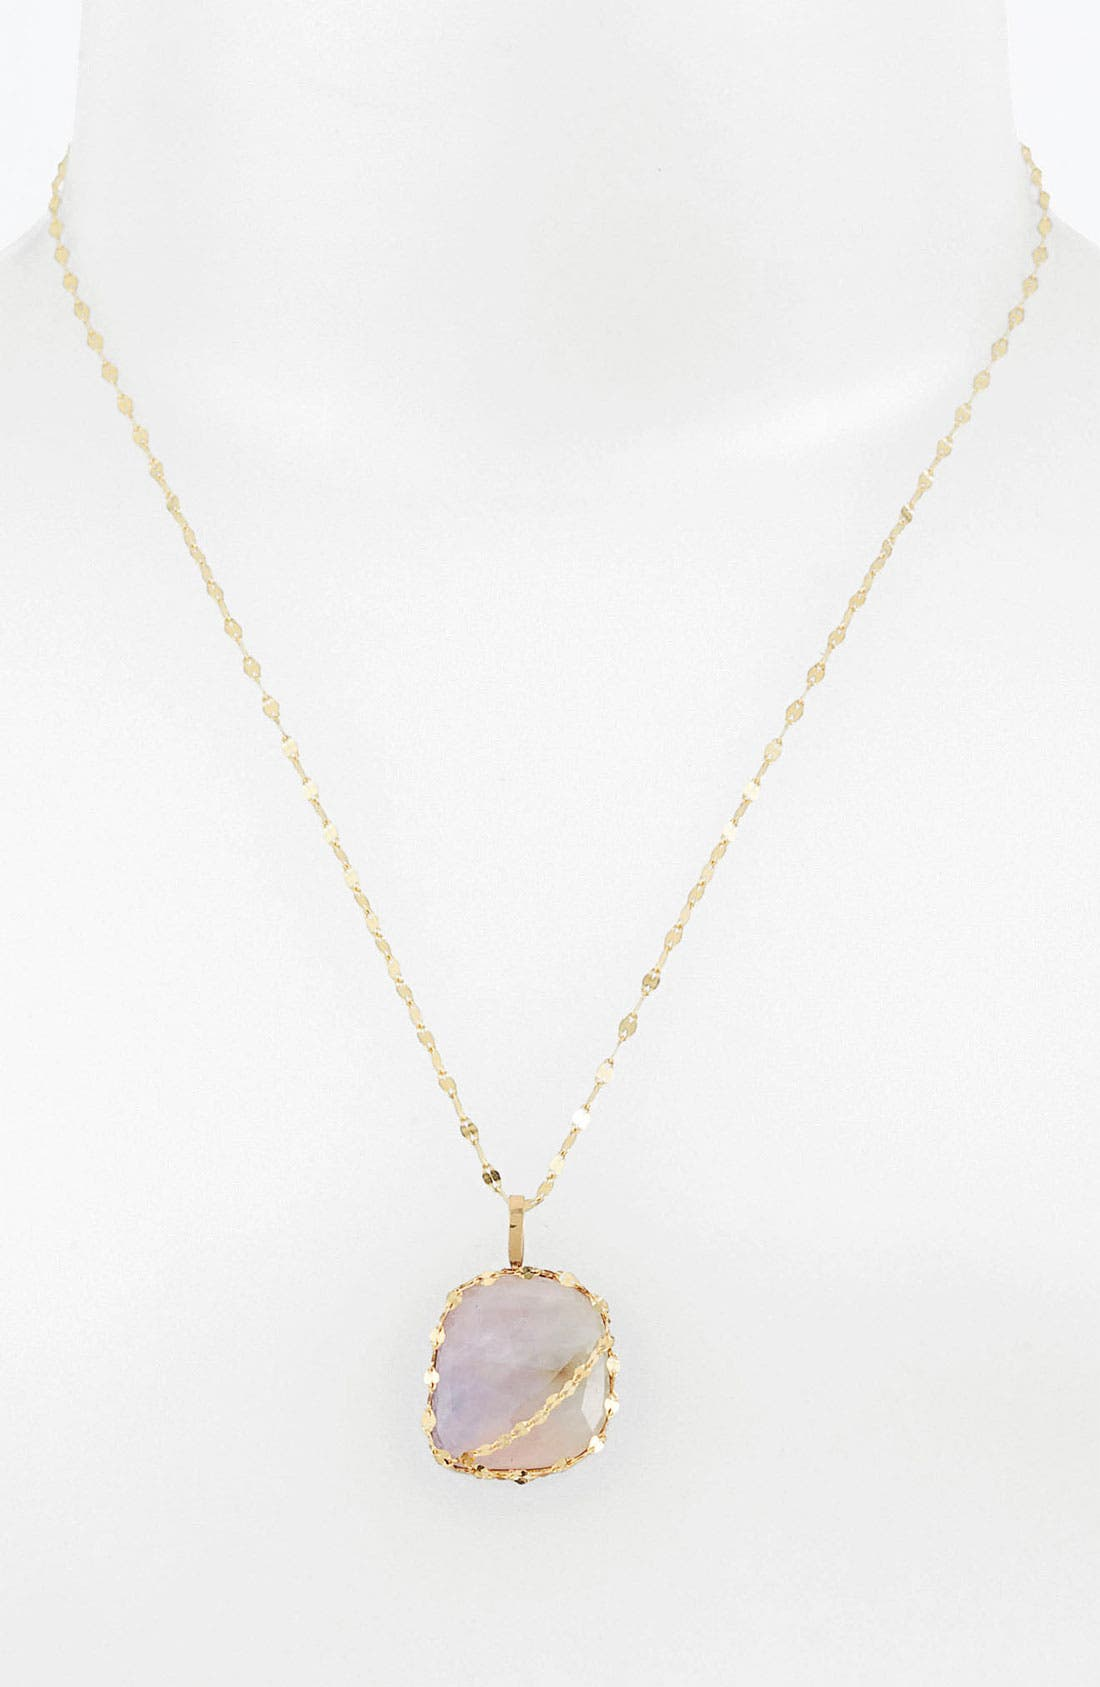 Main Image - Lana Jewelry 'Stone Gold - Paragon' Pendant Necklace